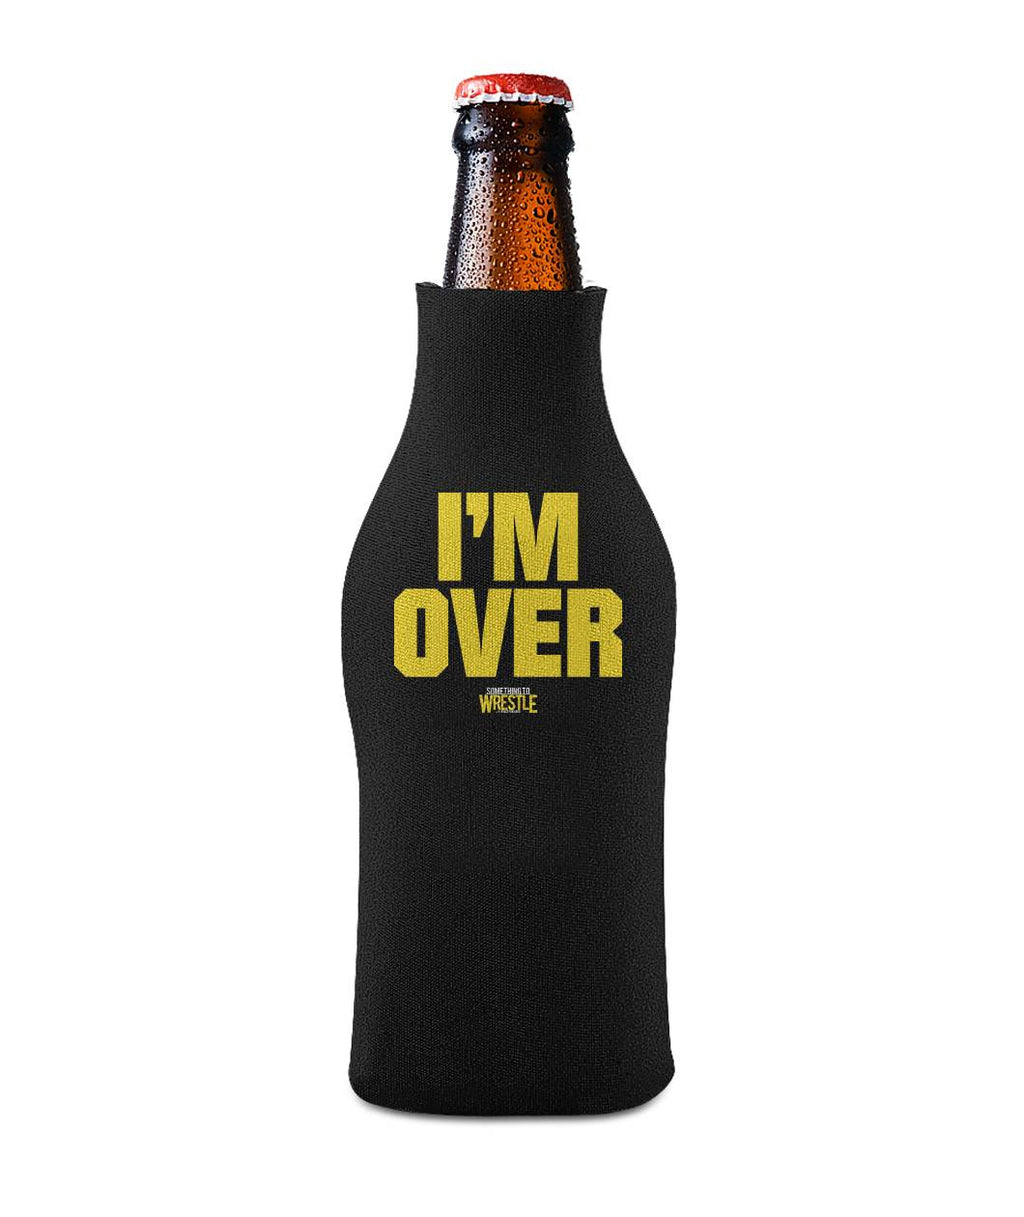 I'm Over Bottle Sleeve